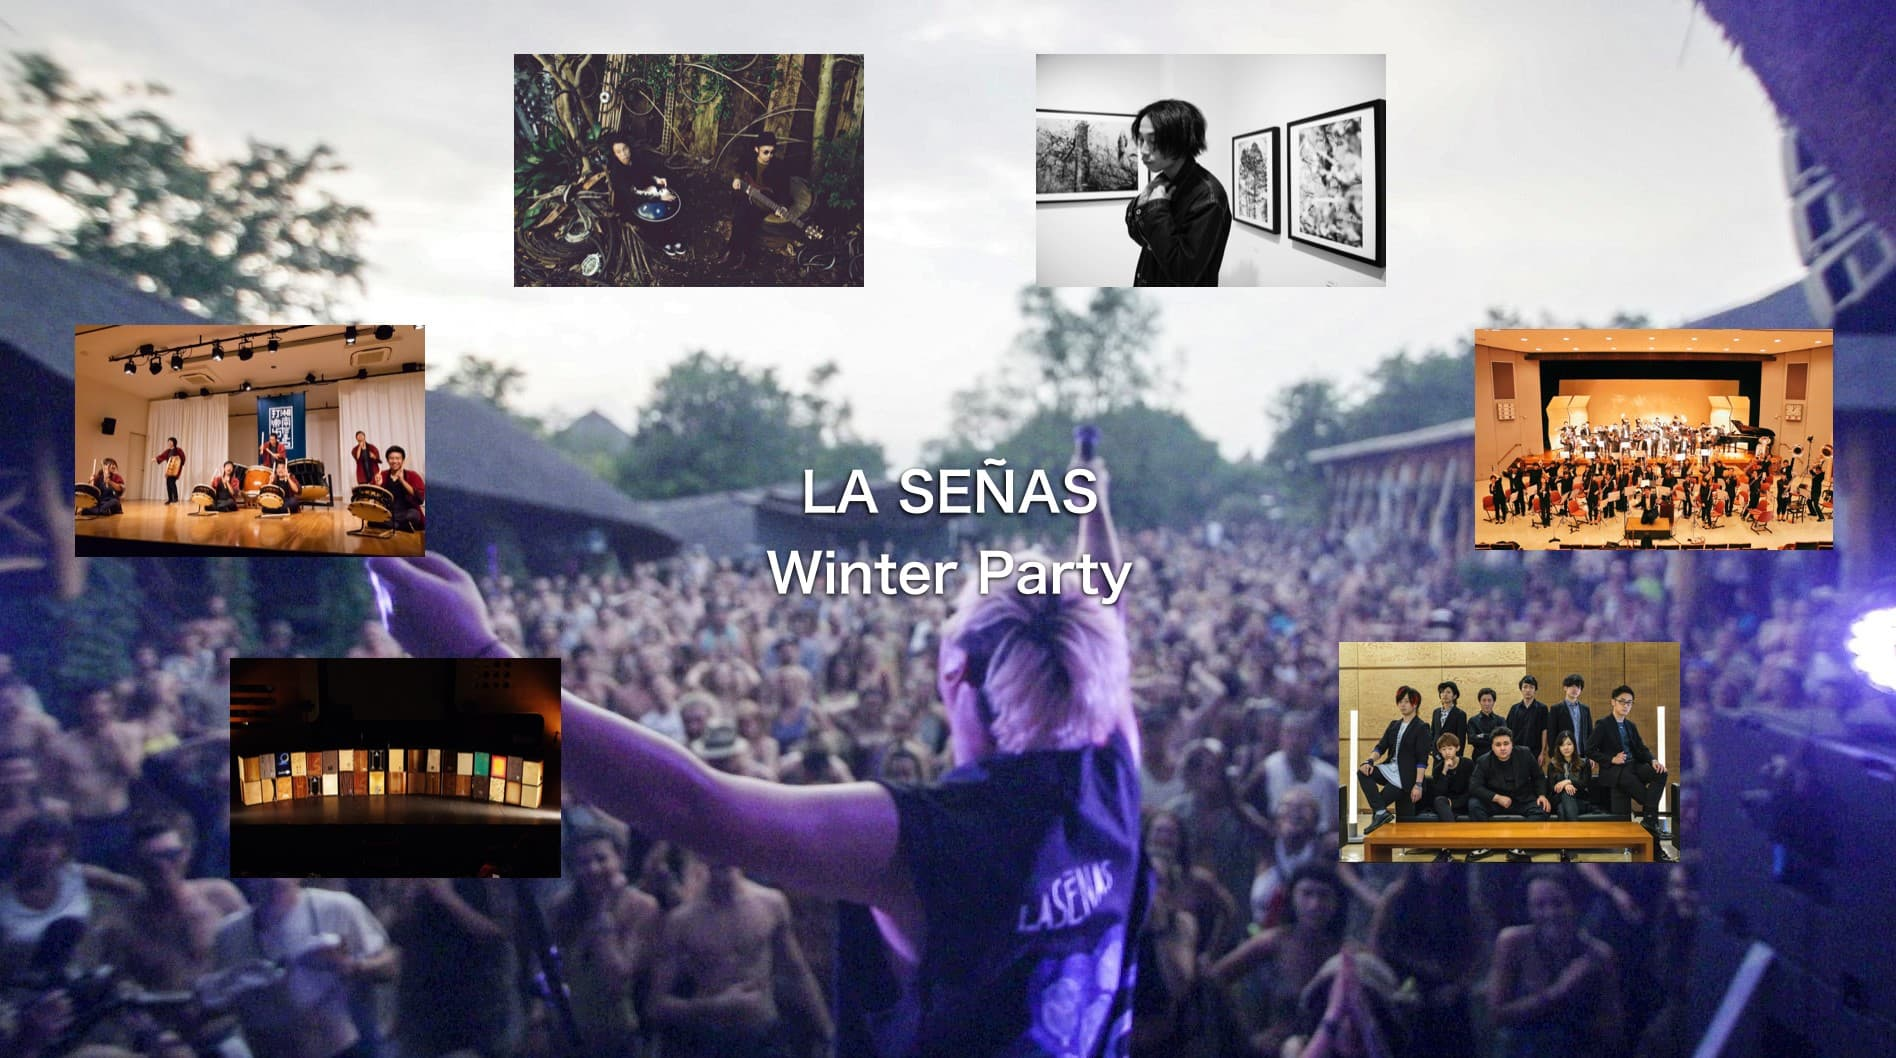 【 二日通し券 】LA SEÑAS Winter Party